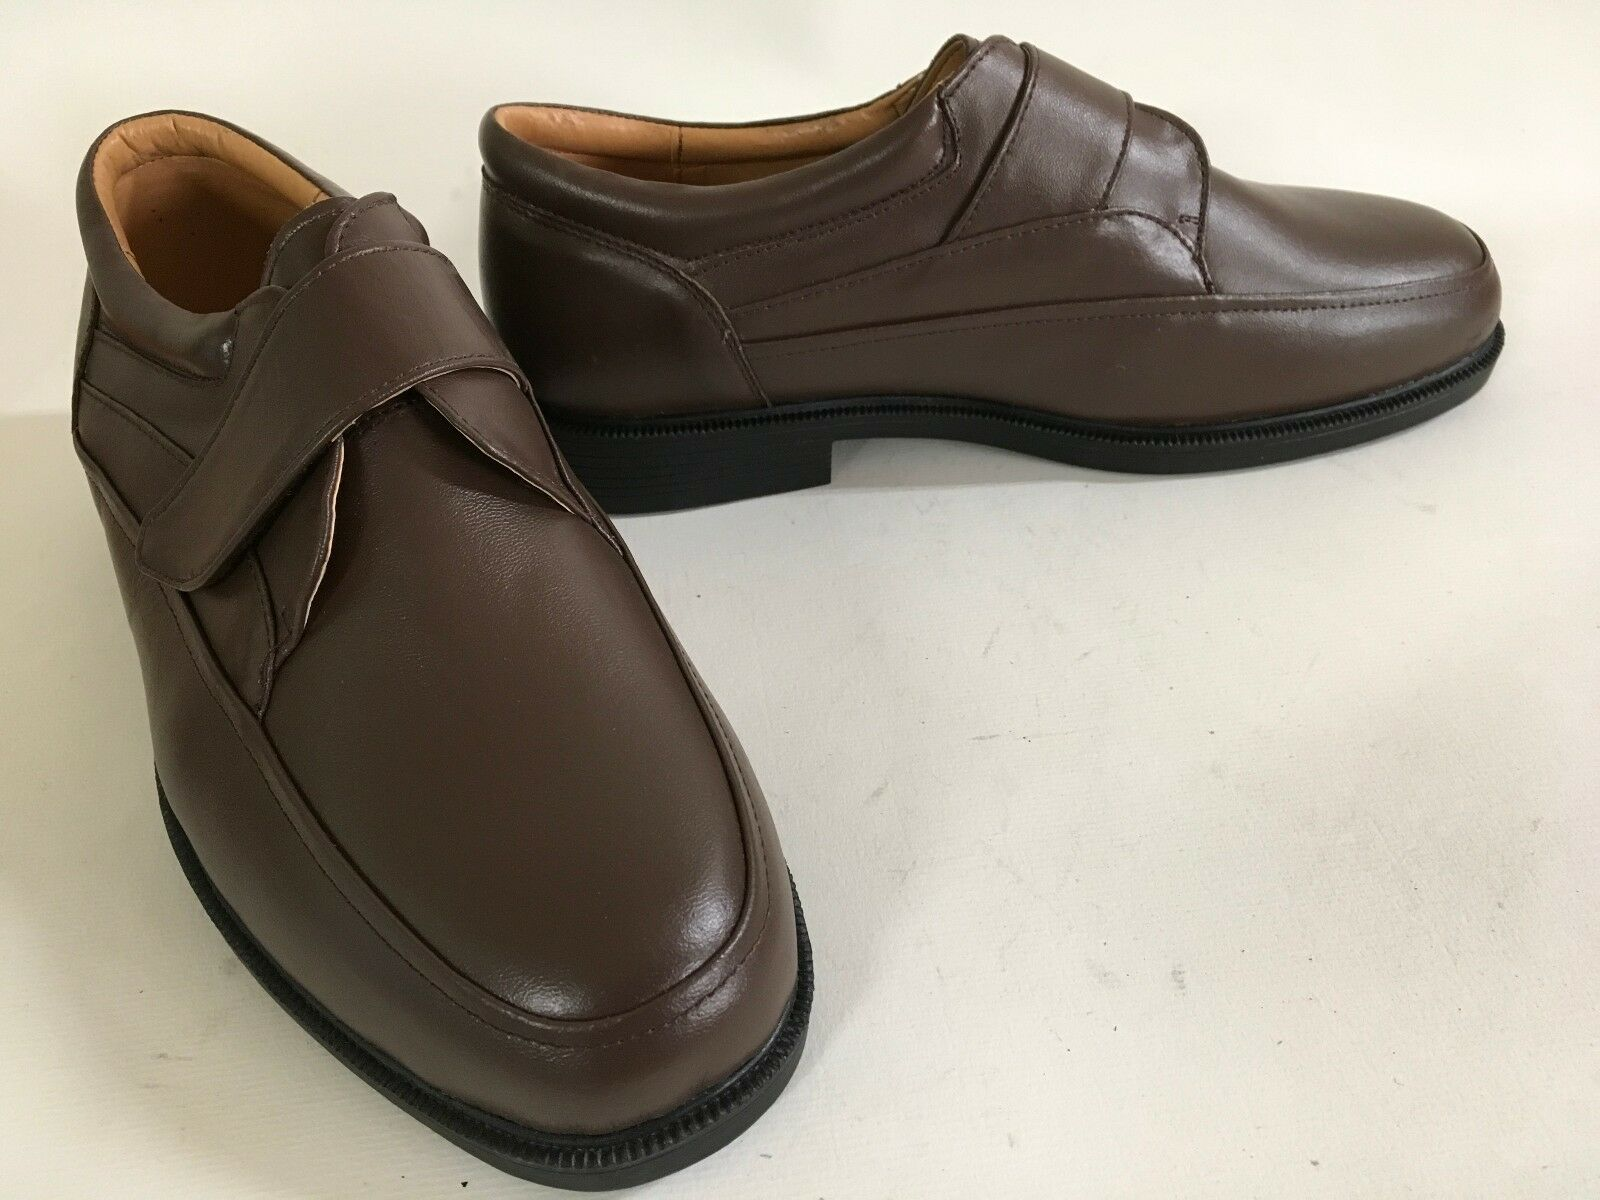 AMBASSADOR LOAFERS Brown Espresso Leather Comfort LOAFERS AMBASSADOR 9D 8aaa86